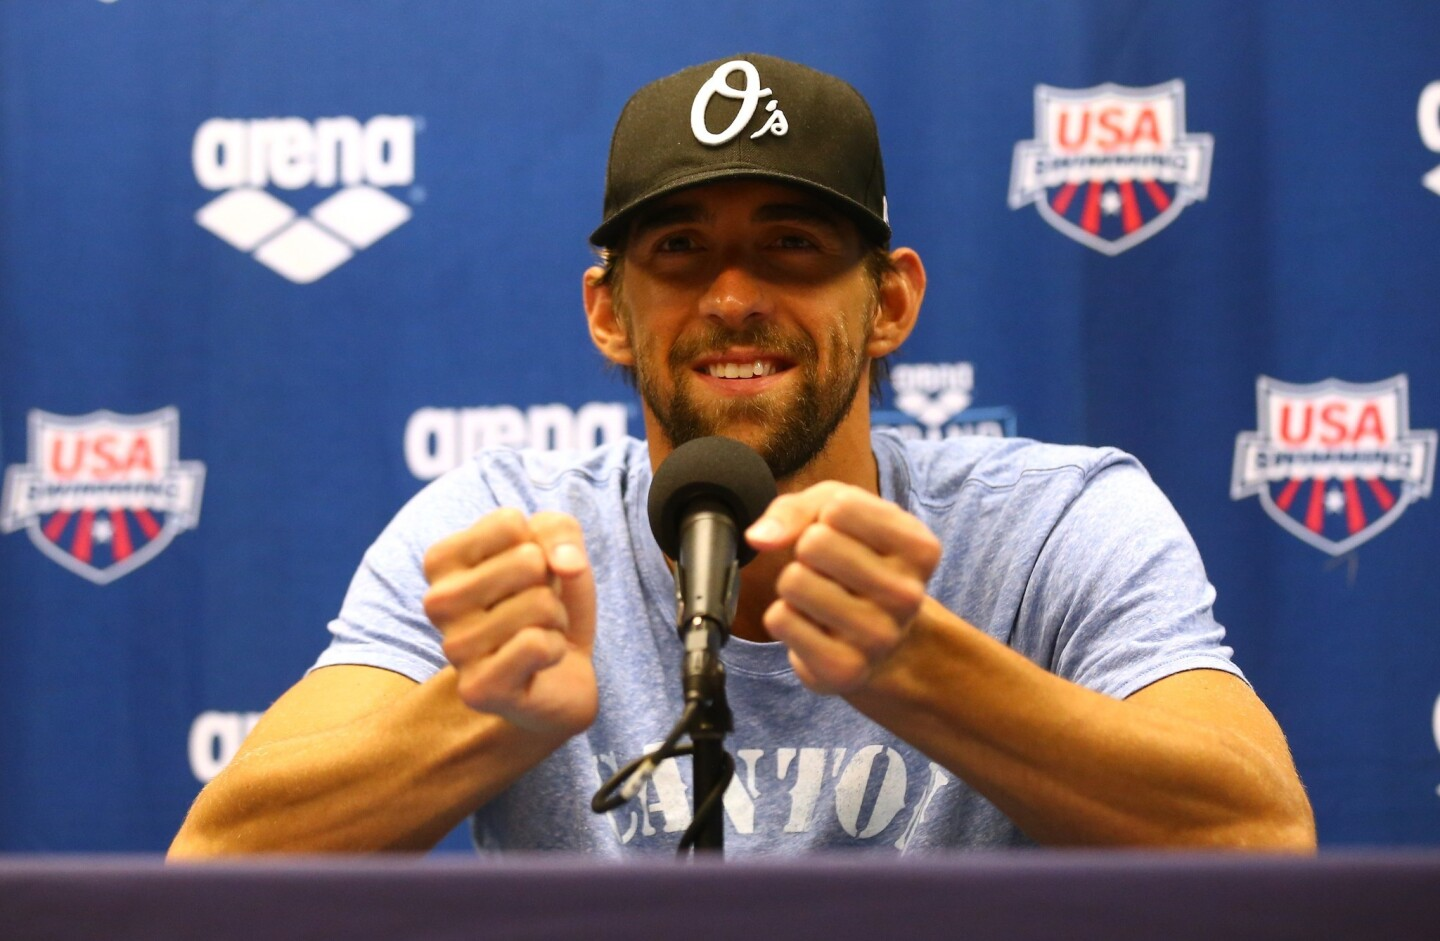 Michael Phelps speaks to the media after his training session ahead of the Arena Grand Prix at Charlotte.